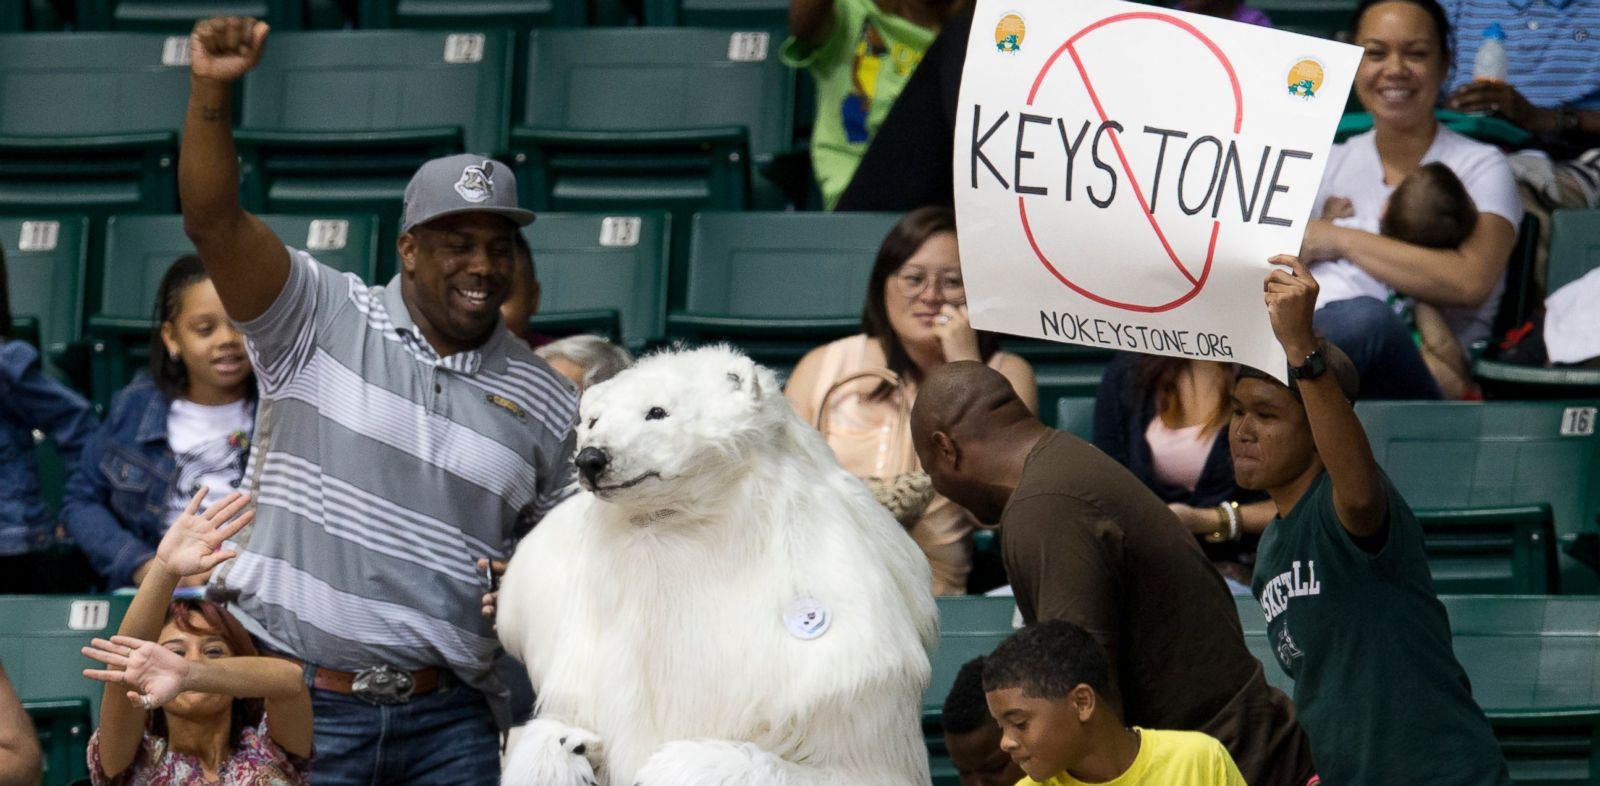 PHOTO: A person dressed as a polar bear and others demonstrate against the Keystone Pipeline as President Barack Obama attends the Oregon State University versus University of Akron college basketball game in Honolulu, Dec. 22, 2013.